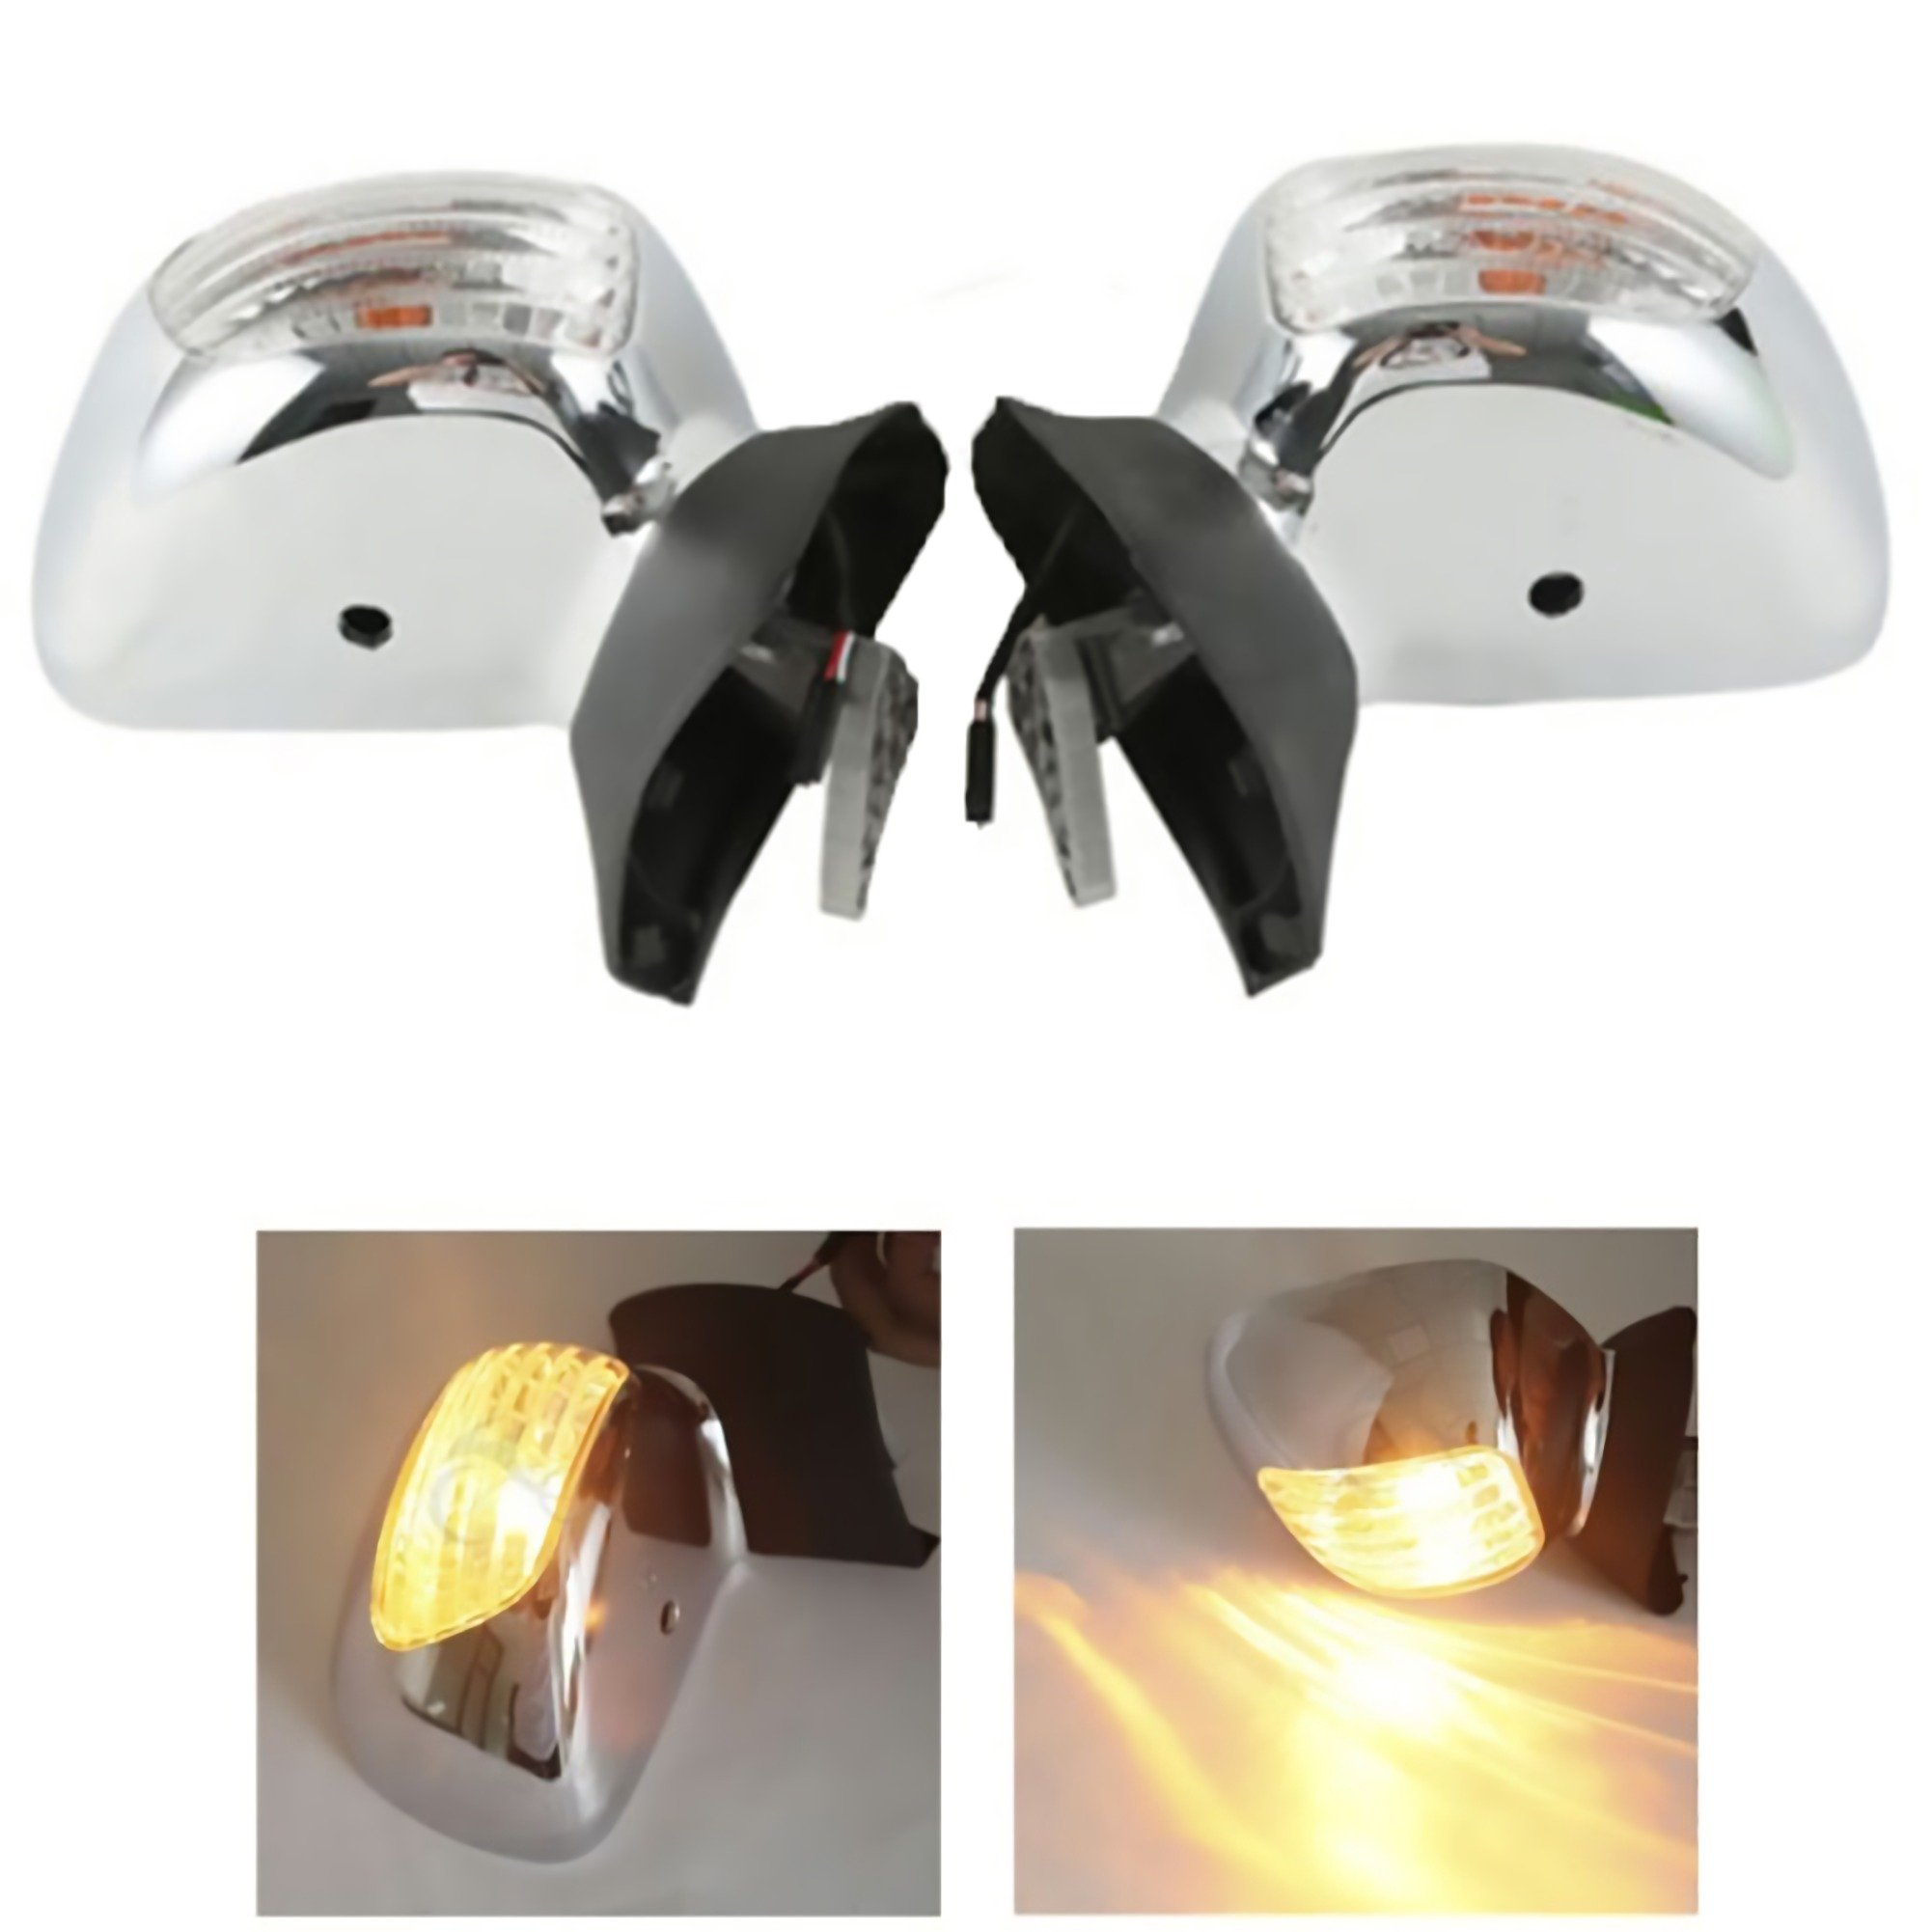 XMT-MOTO Chrome Rear View Mirror Clear Signal Lens For Honda Goldwing GL 1800 2001-2012